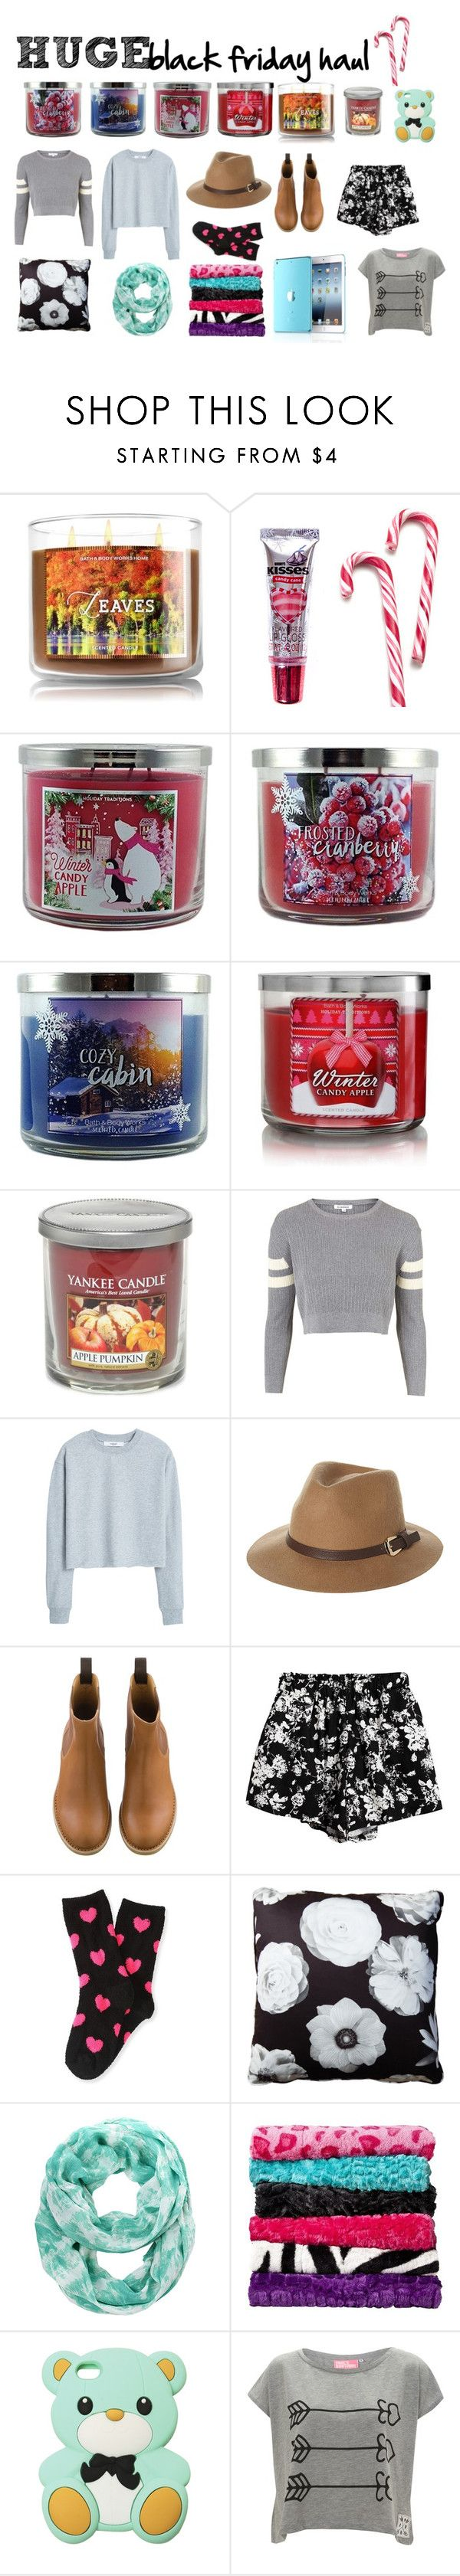 """""""HUGE black friday haul"""" by polyvore1357 on Polyvore featuring Hershey's, Yankee Candle, Topshop, MANGO, Rusty, Chicnova Fashion, P.S. from Aéropostale, Stuart Lawrence, Nine West and Xhilaration"""